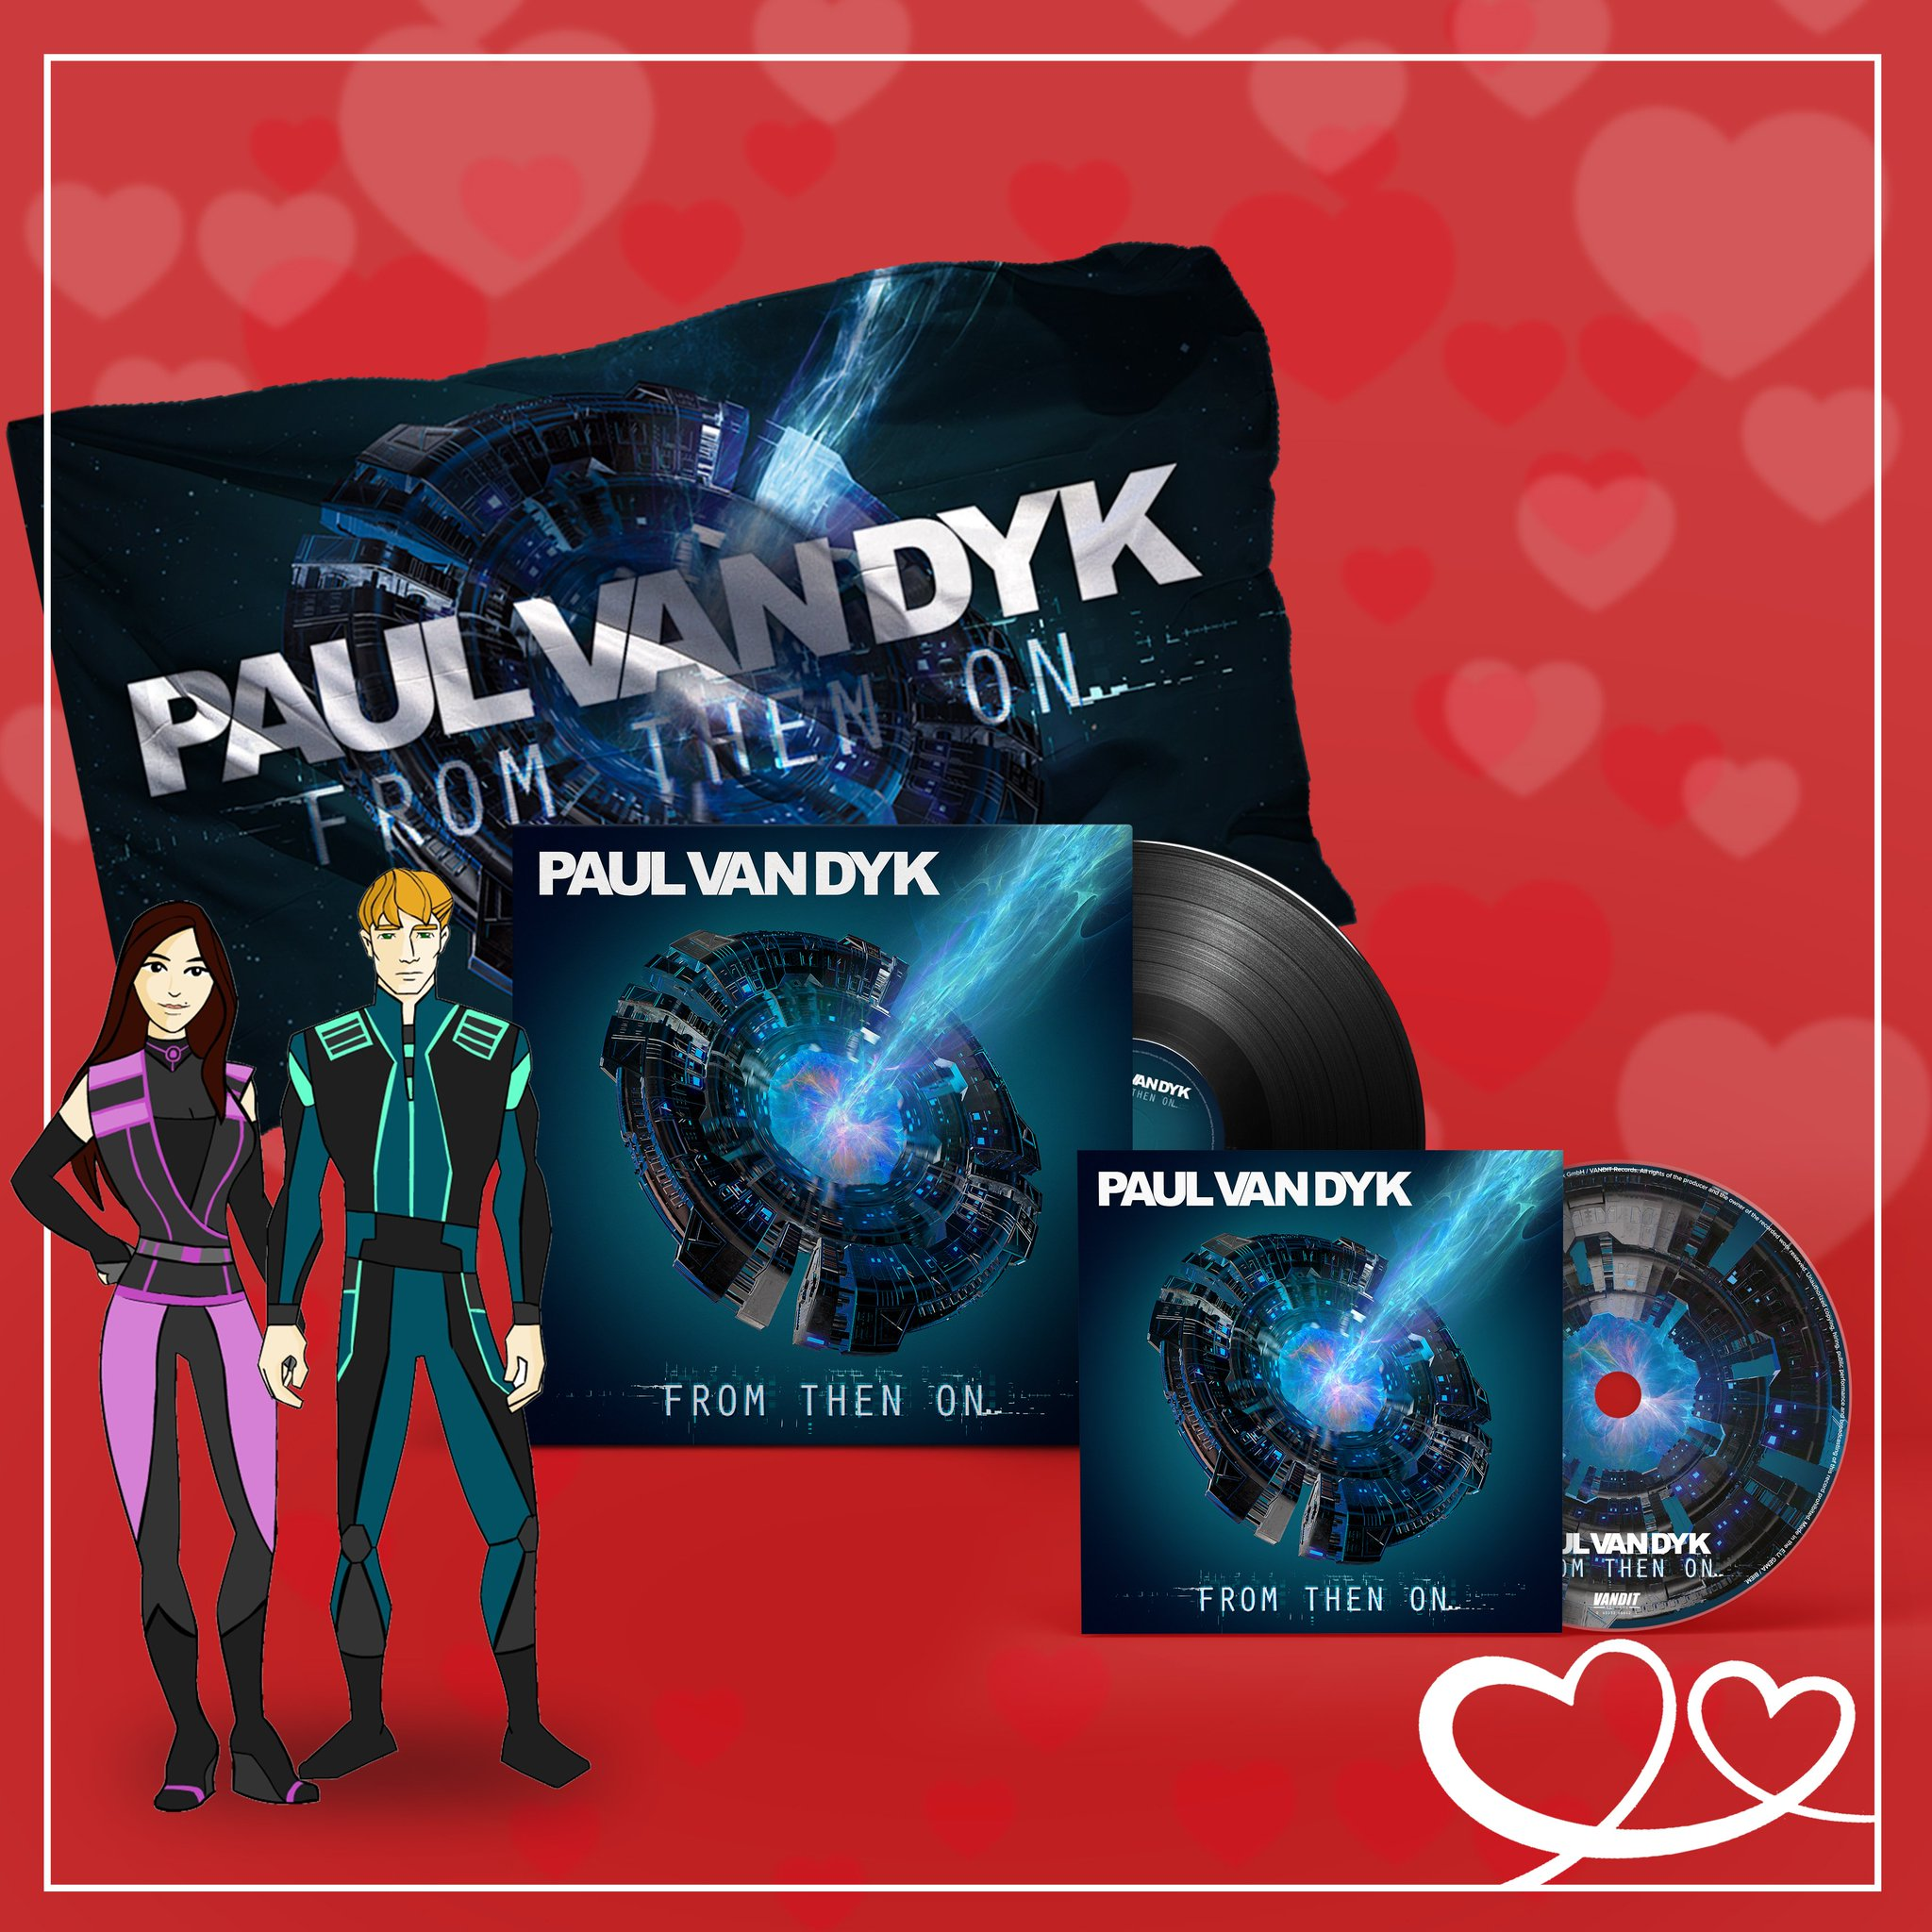 The perfect #ValentinesDay present for music lovers! #FromThenOn https://t.co/PUnF7KNMFH https://t.co/hvze15eSMJ